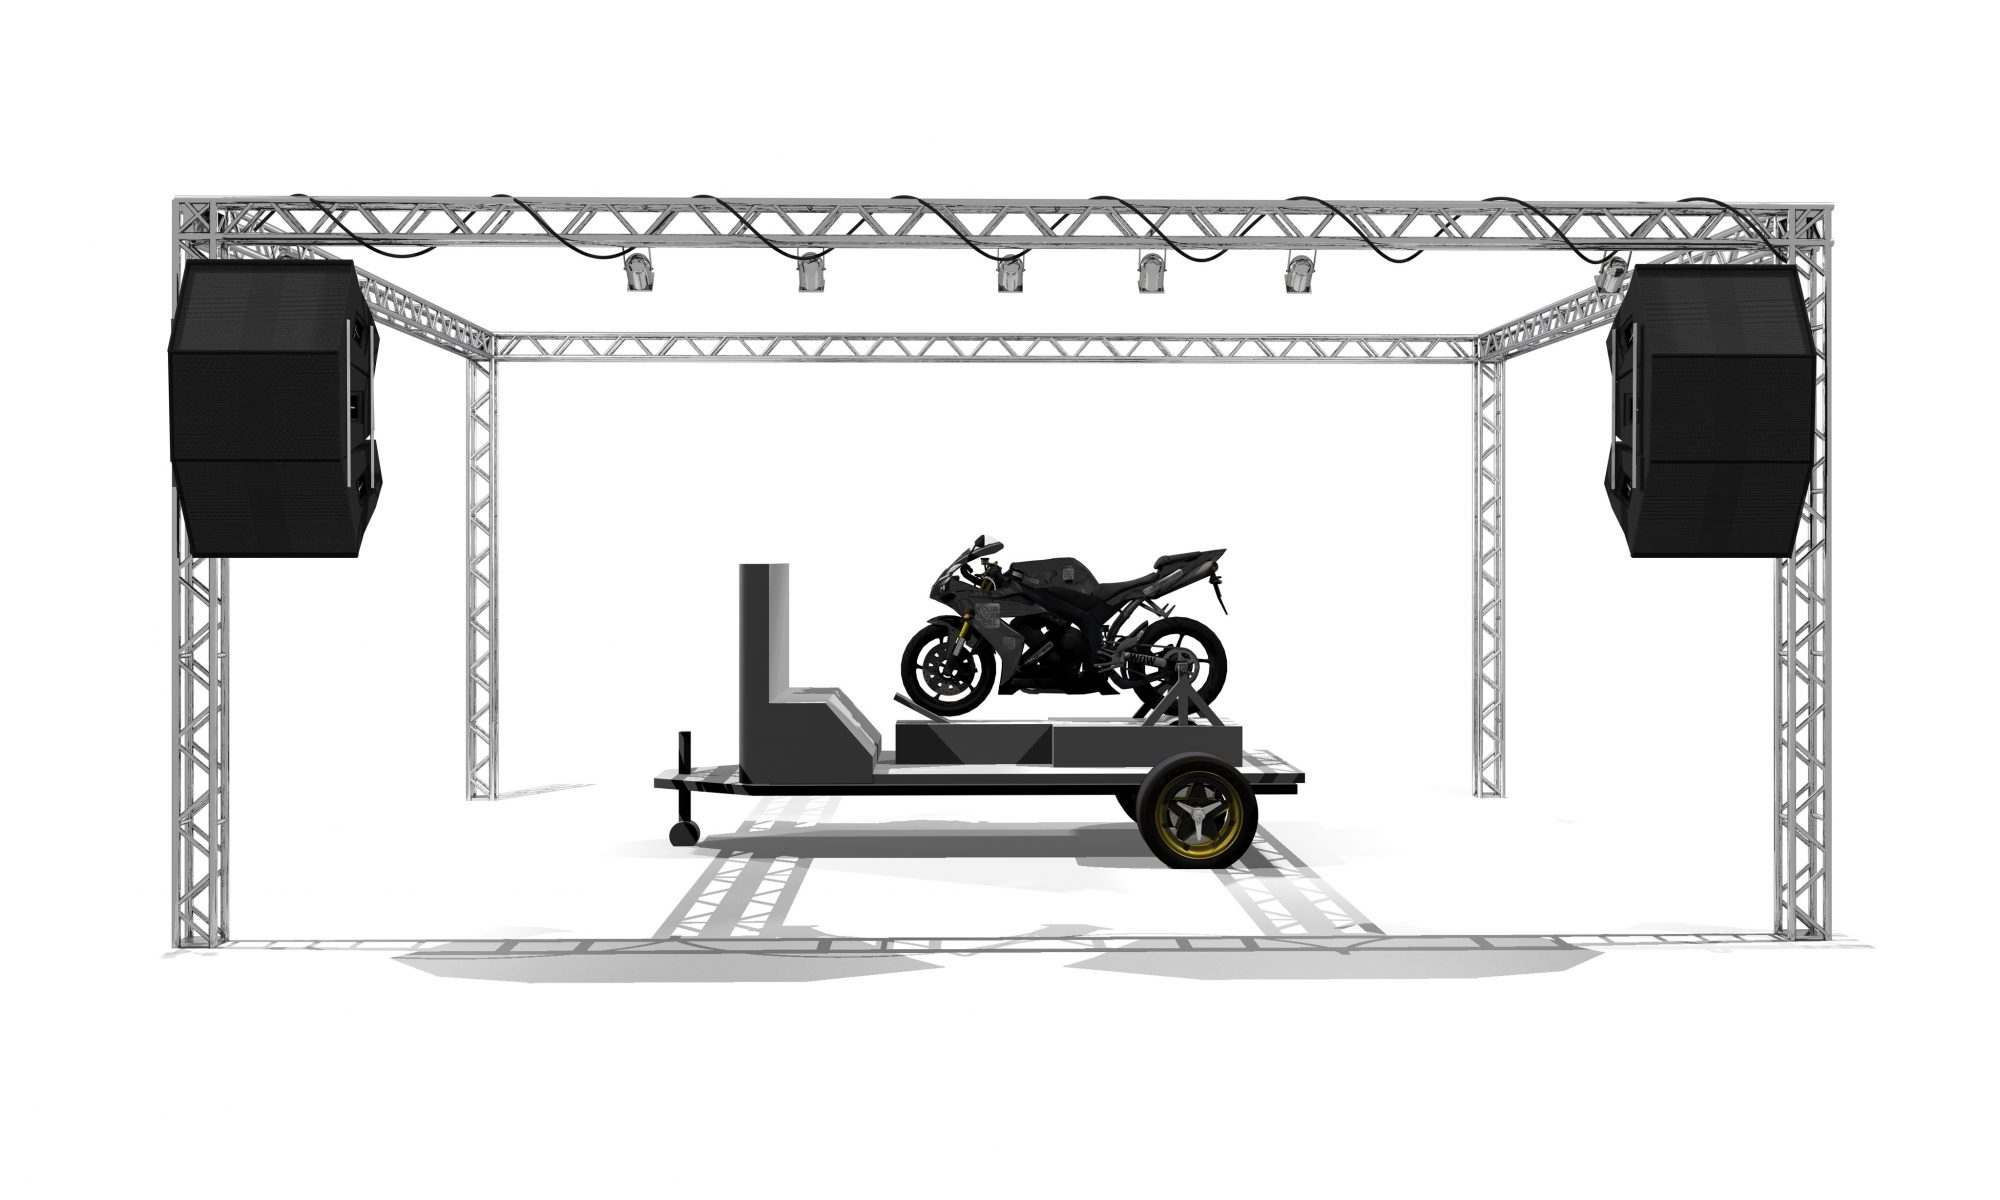 wheelie-machine-exhibition-layout